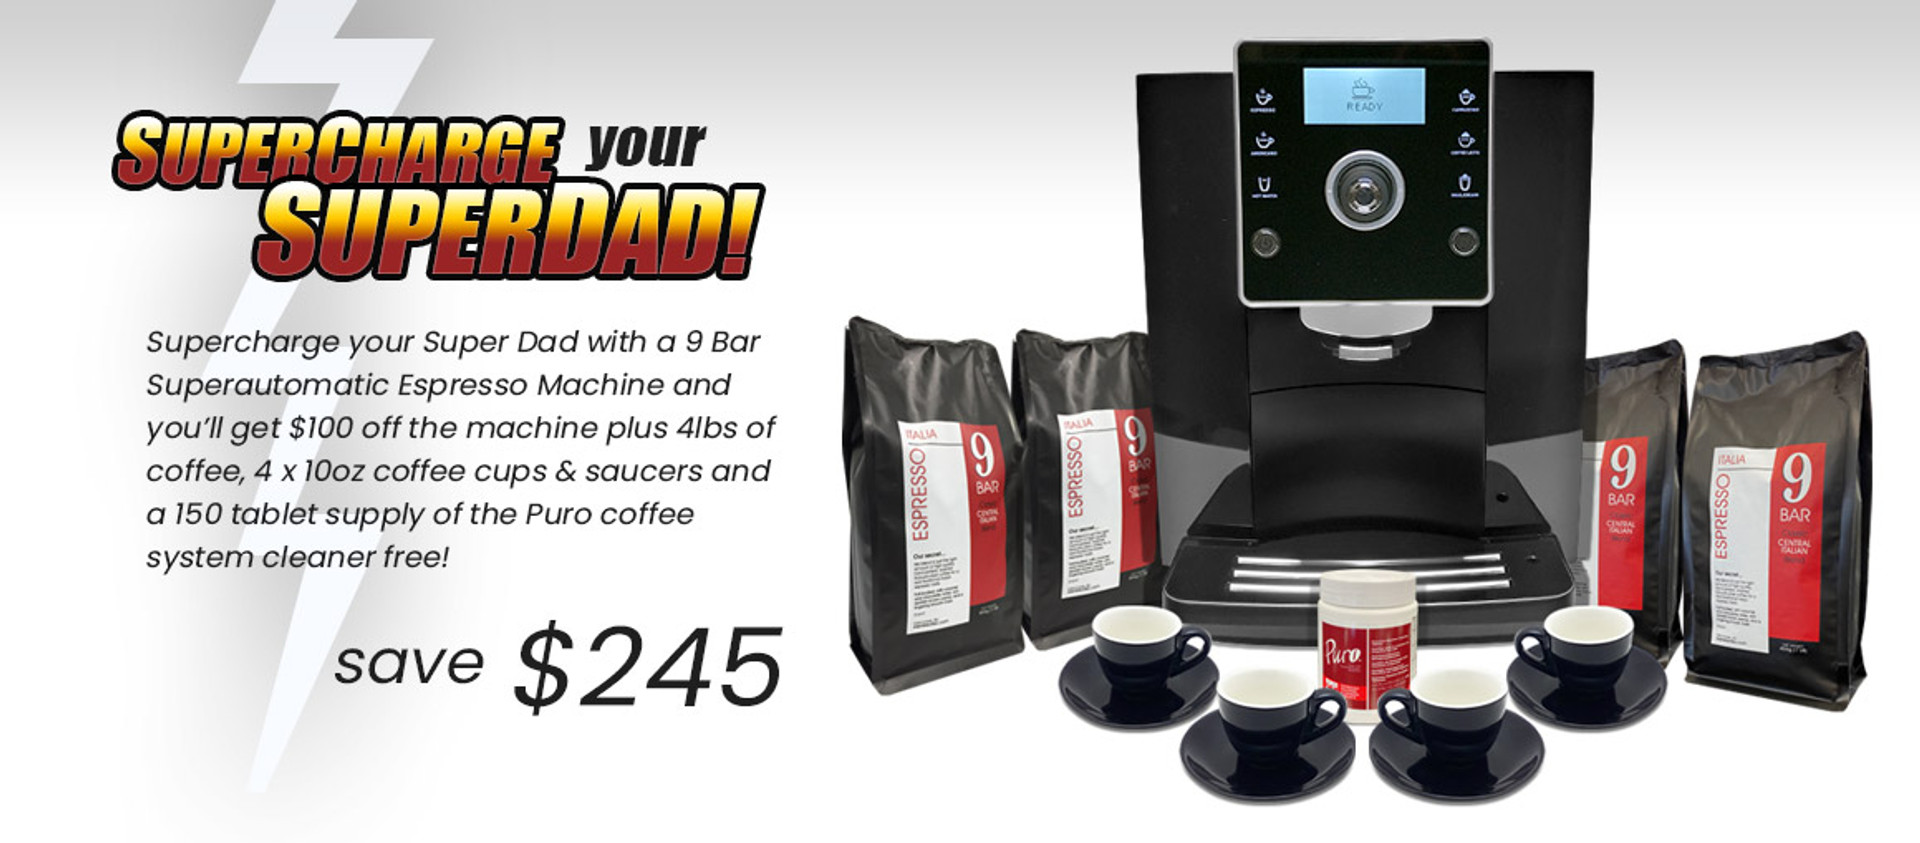 Supercharge Your Super-Dad  - 9 Bar 26.01 Superautomatic Deal